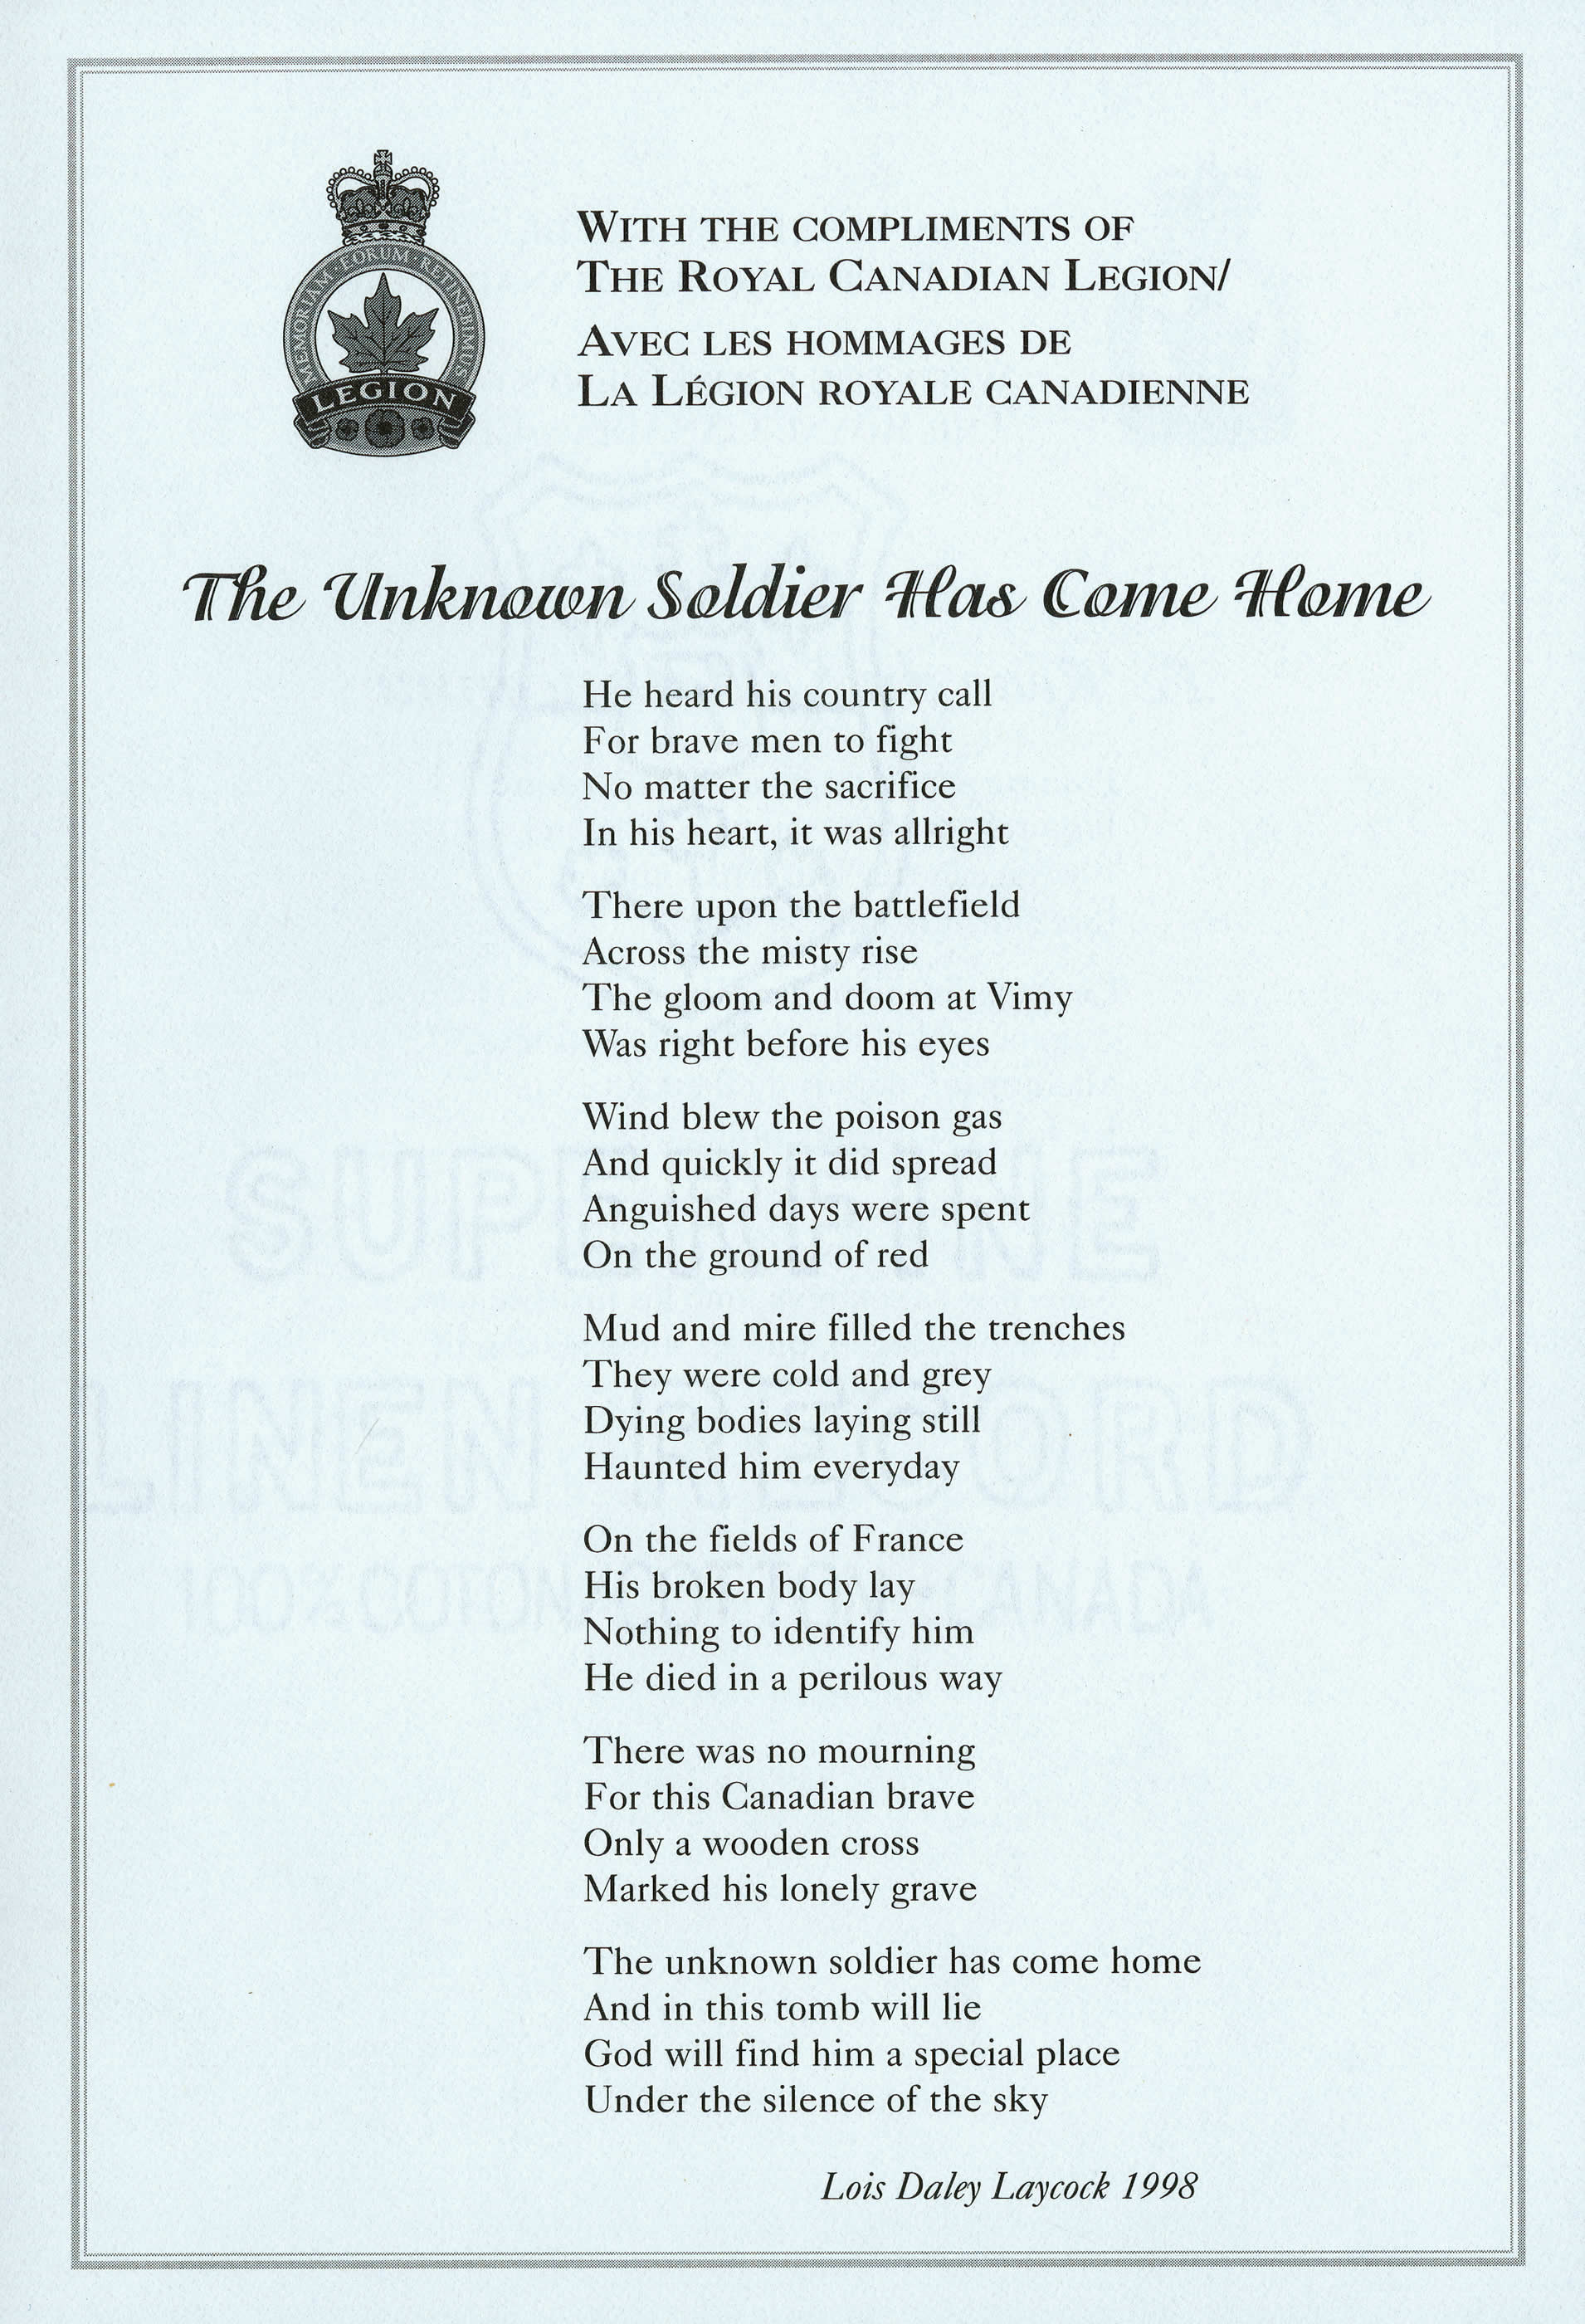 <i>The Unknown Soldier Has Come Home</i>